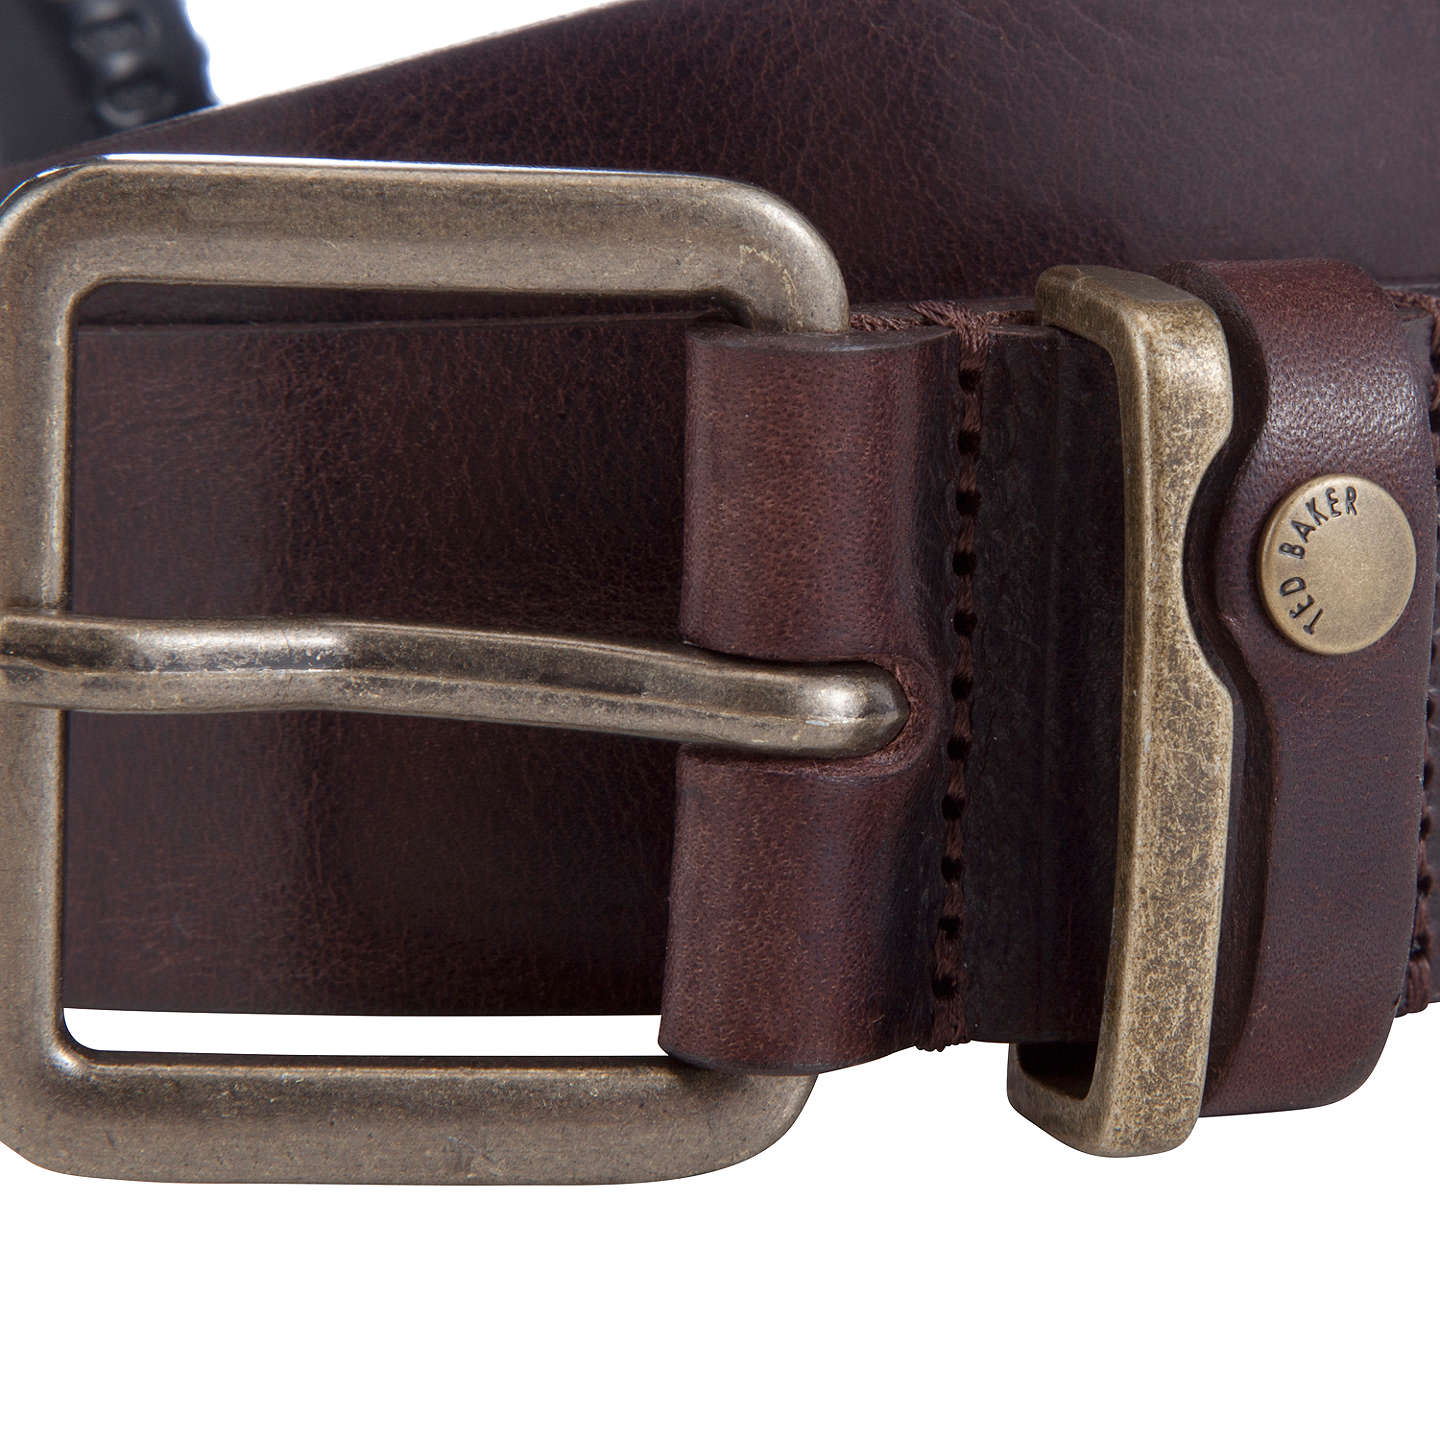 BuyTed Baker Katchup Leather Belt, Chocolate, 32 Online at johnlewis.com